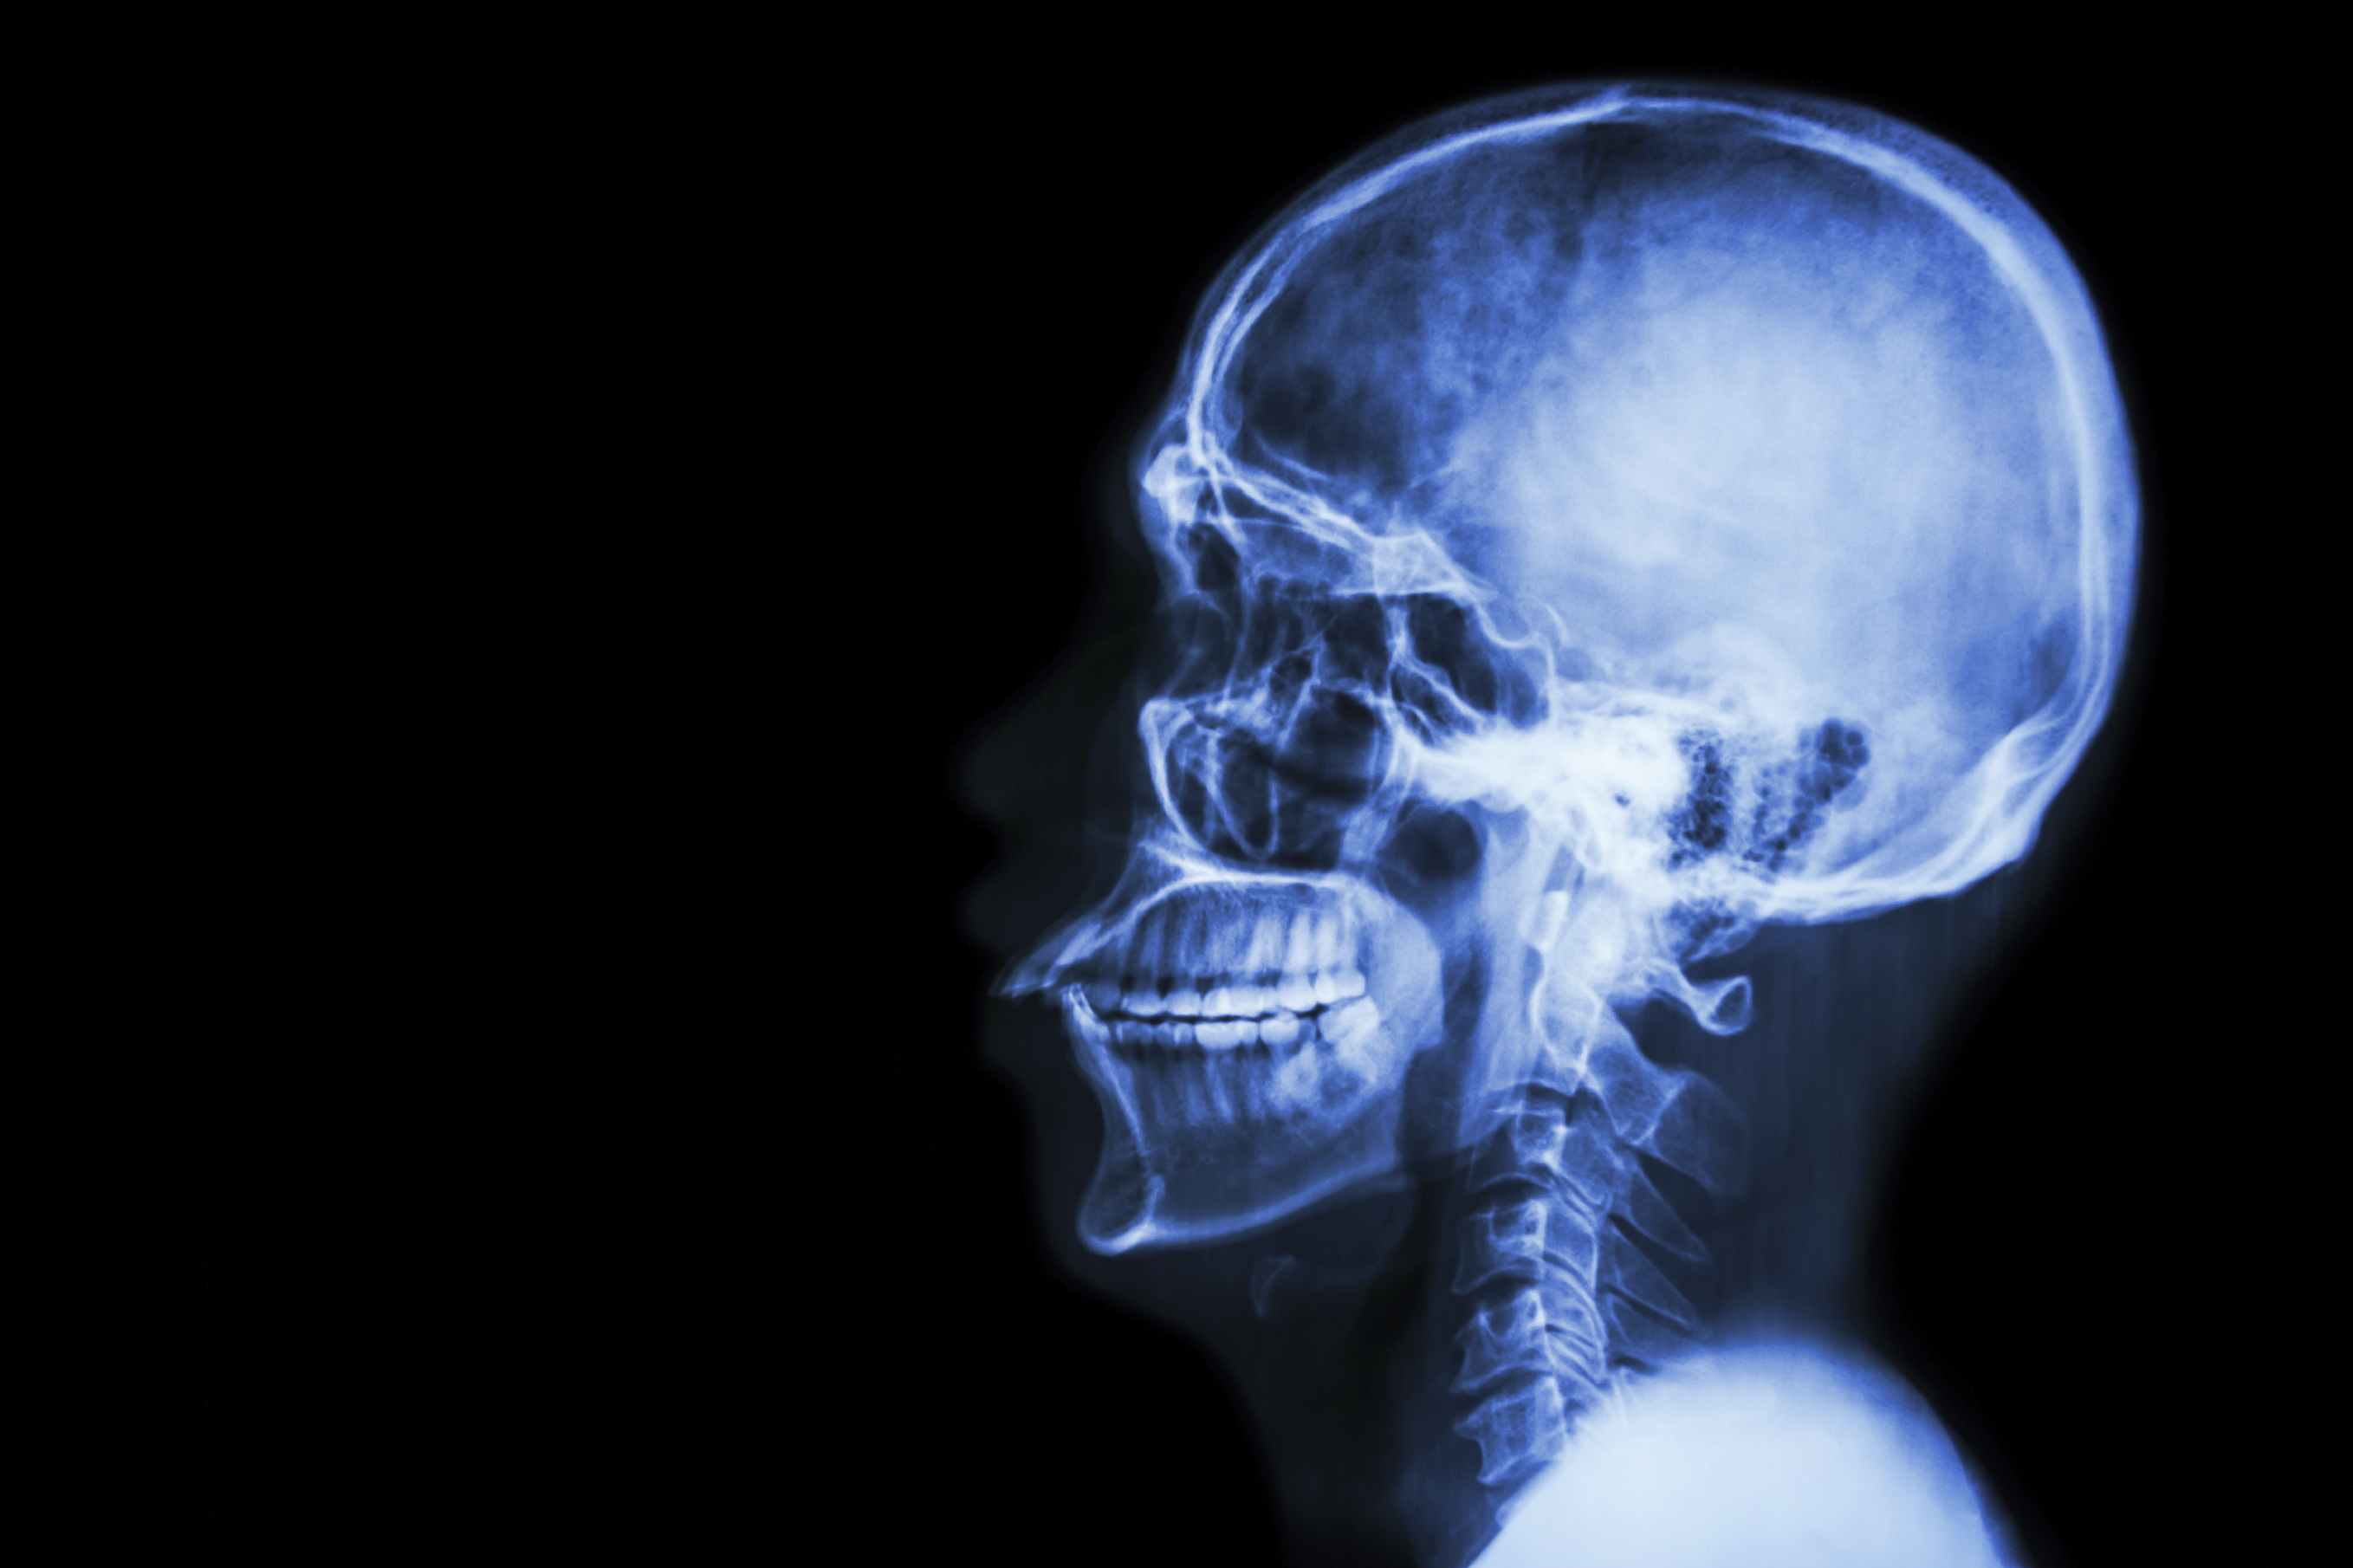 first human head transplant two years away, surgeon claims - cbs news, Muscles